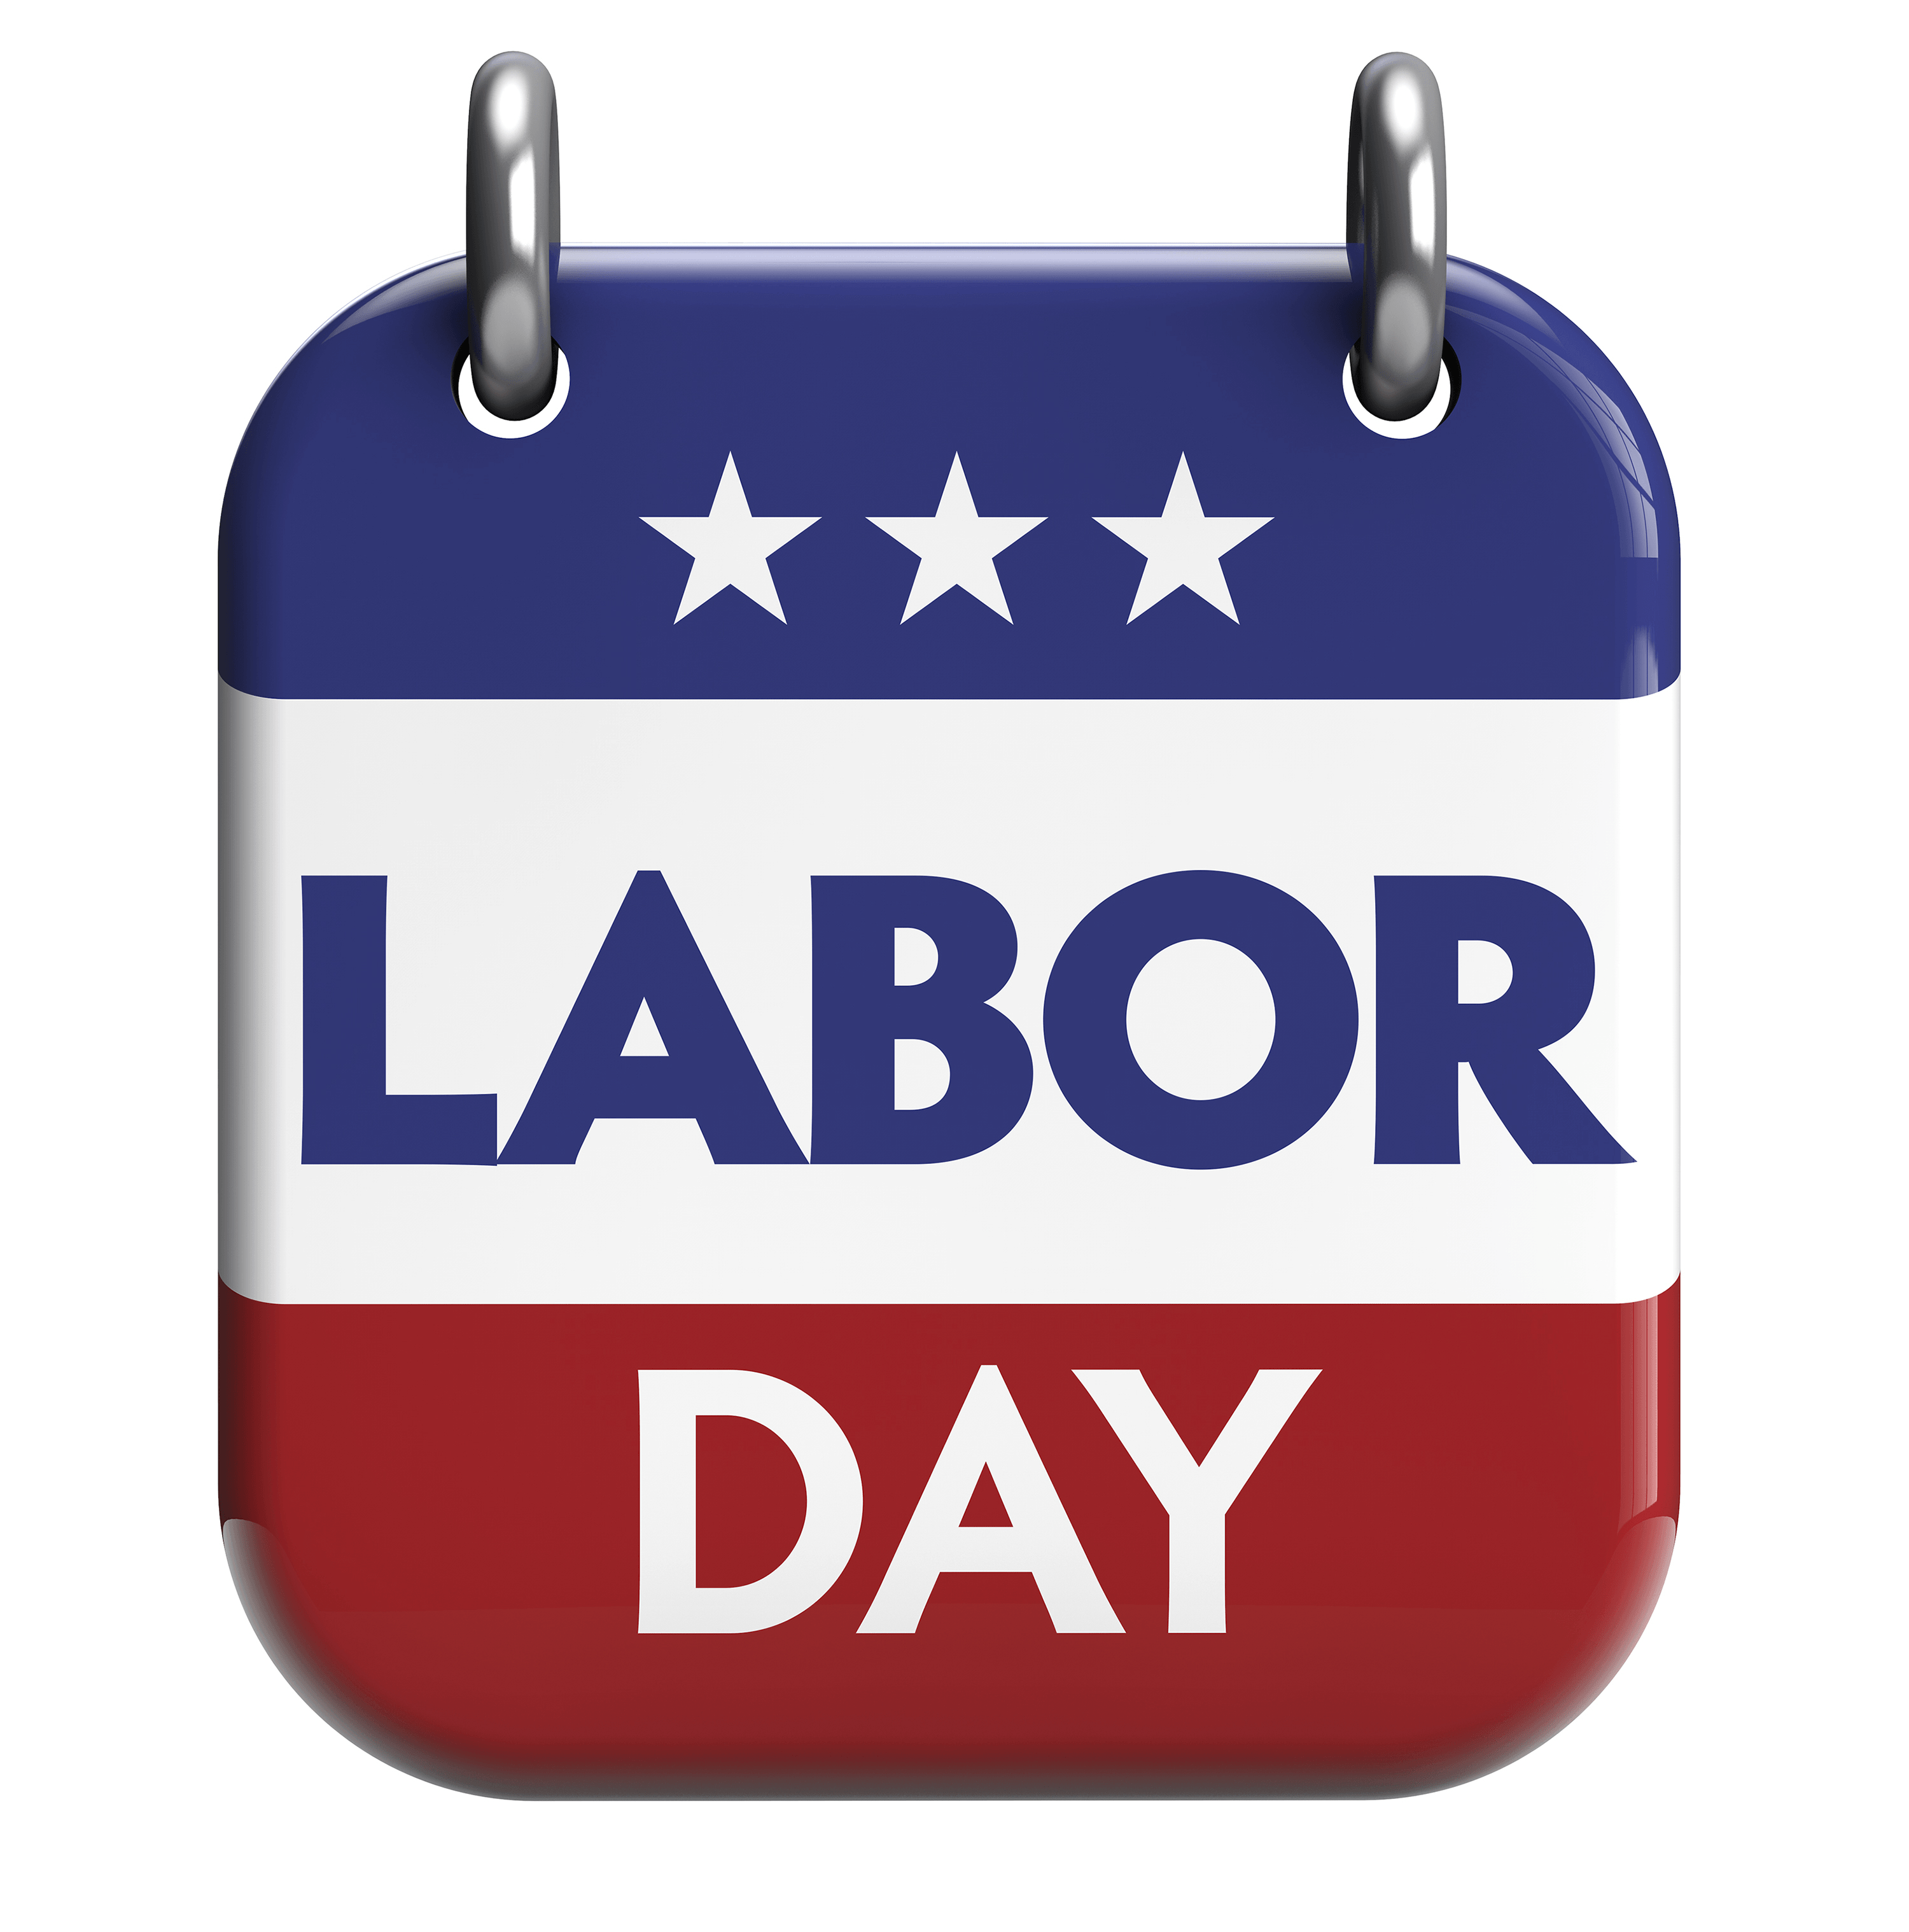 Labor Day Images, Labor Day Wallpapers For Free Download, GLaureL ...